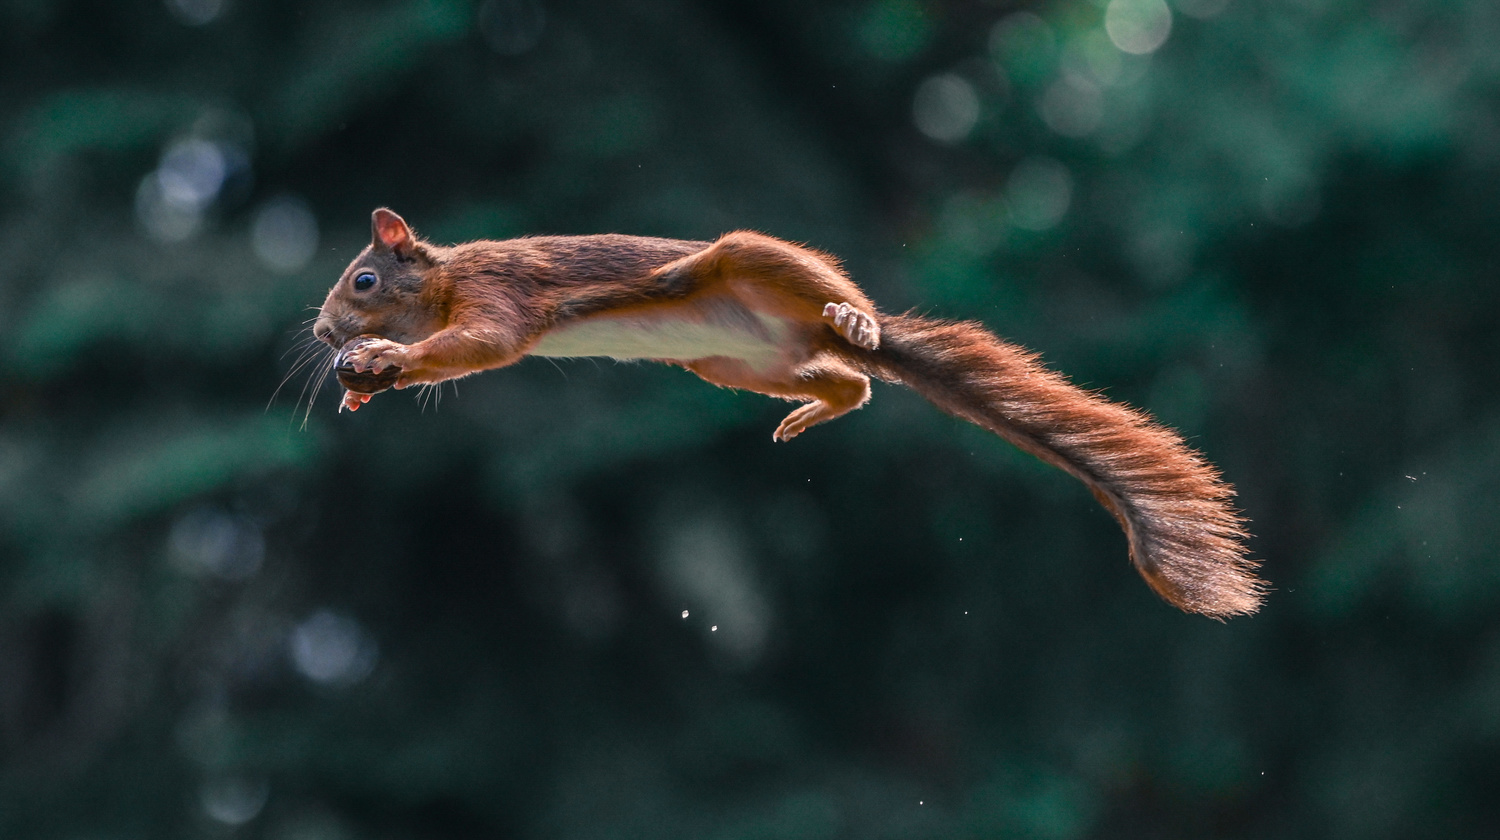 A squirrel jumping with a nut